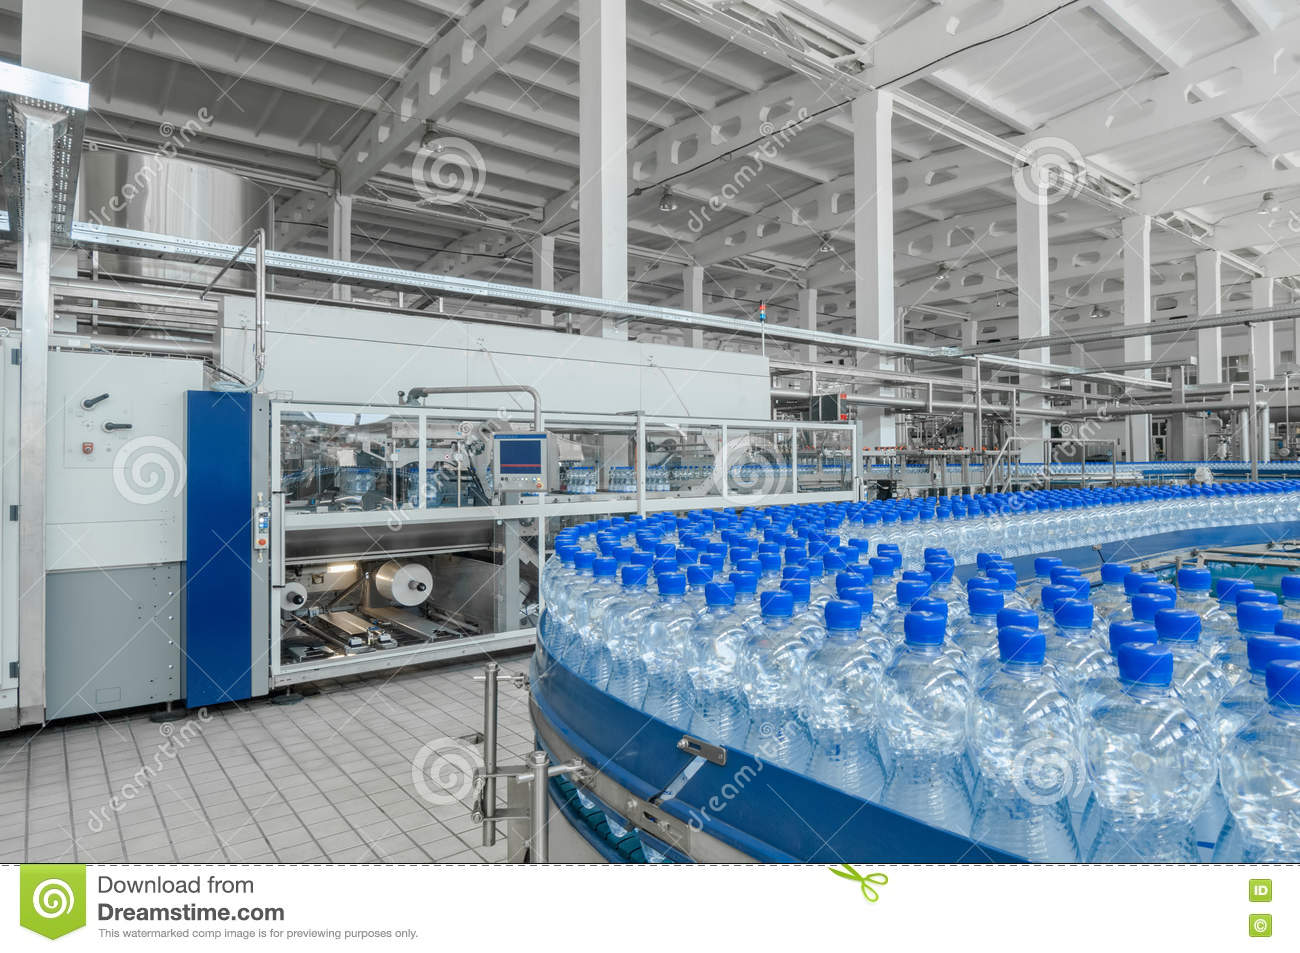 a paper on the history of production of nylon Papermaking: papermaking, formation of a matted or felted sheet, usually of cellulose fibres, from water suspension on a wire screen paper is the basic material used for written communication and the dissemination of information.